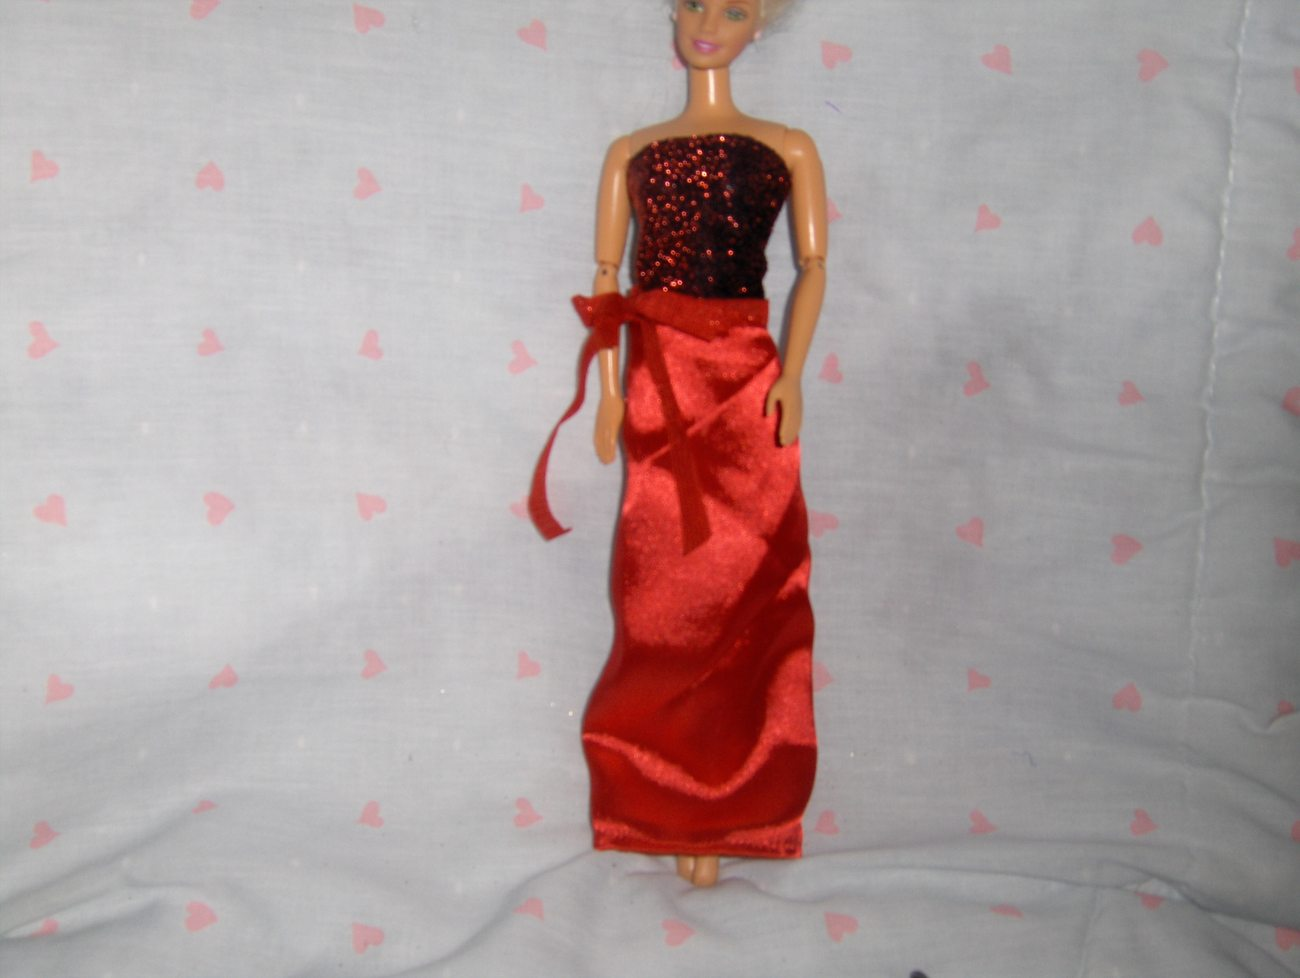 Red Satin and Glitter Gown fits Barbie and most Fashion Dolls